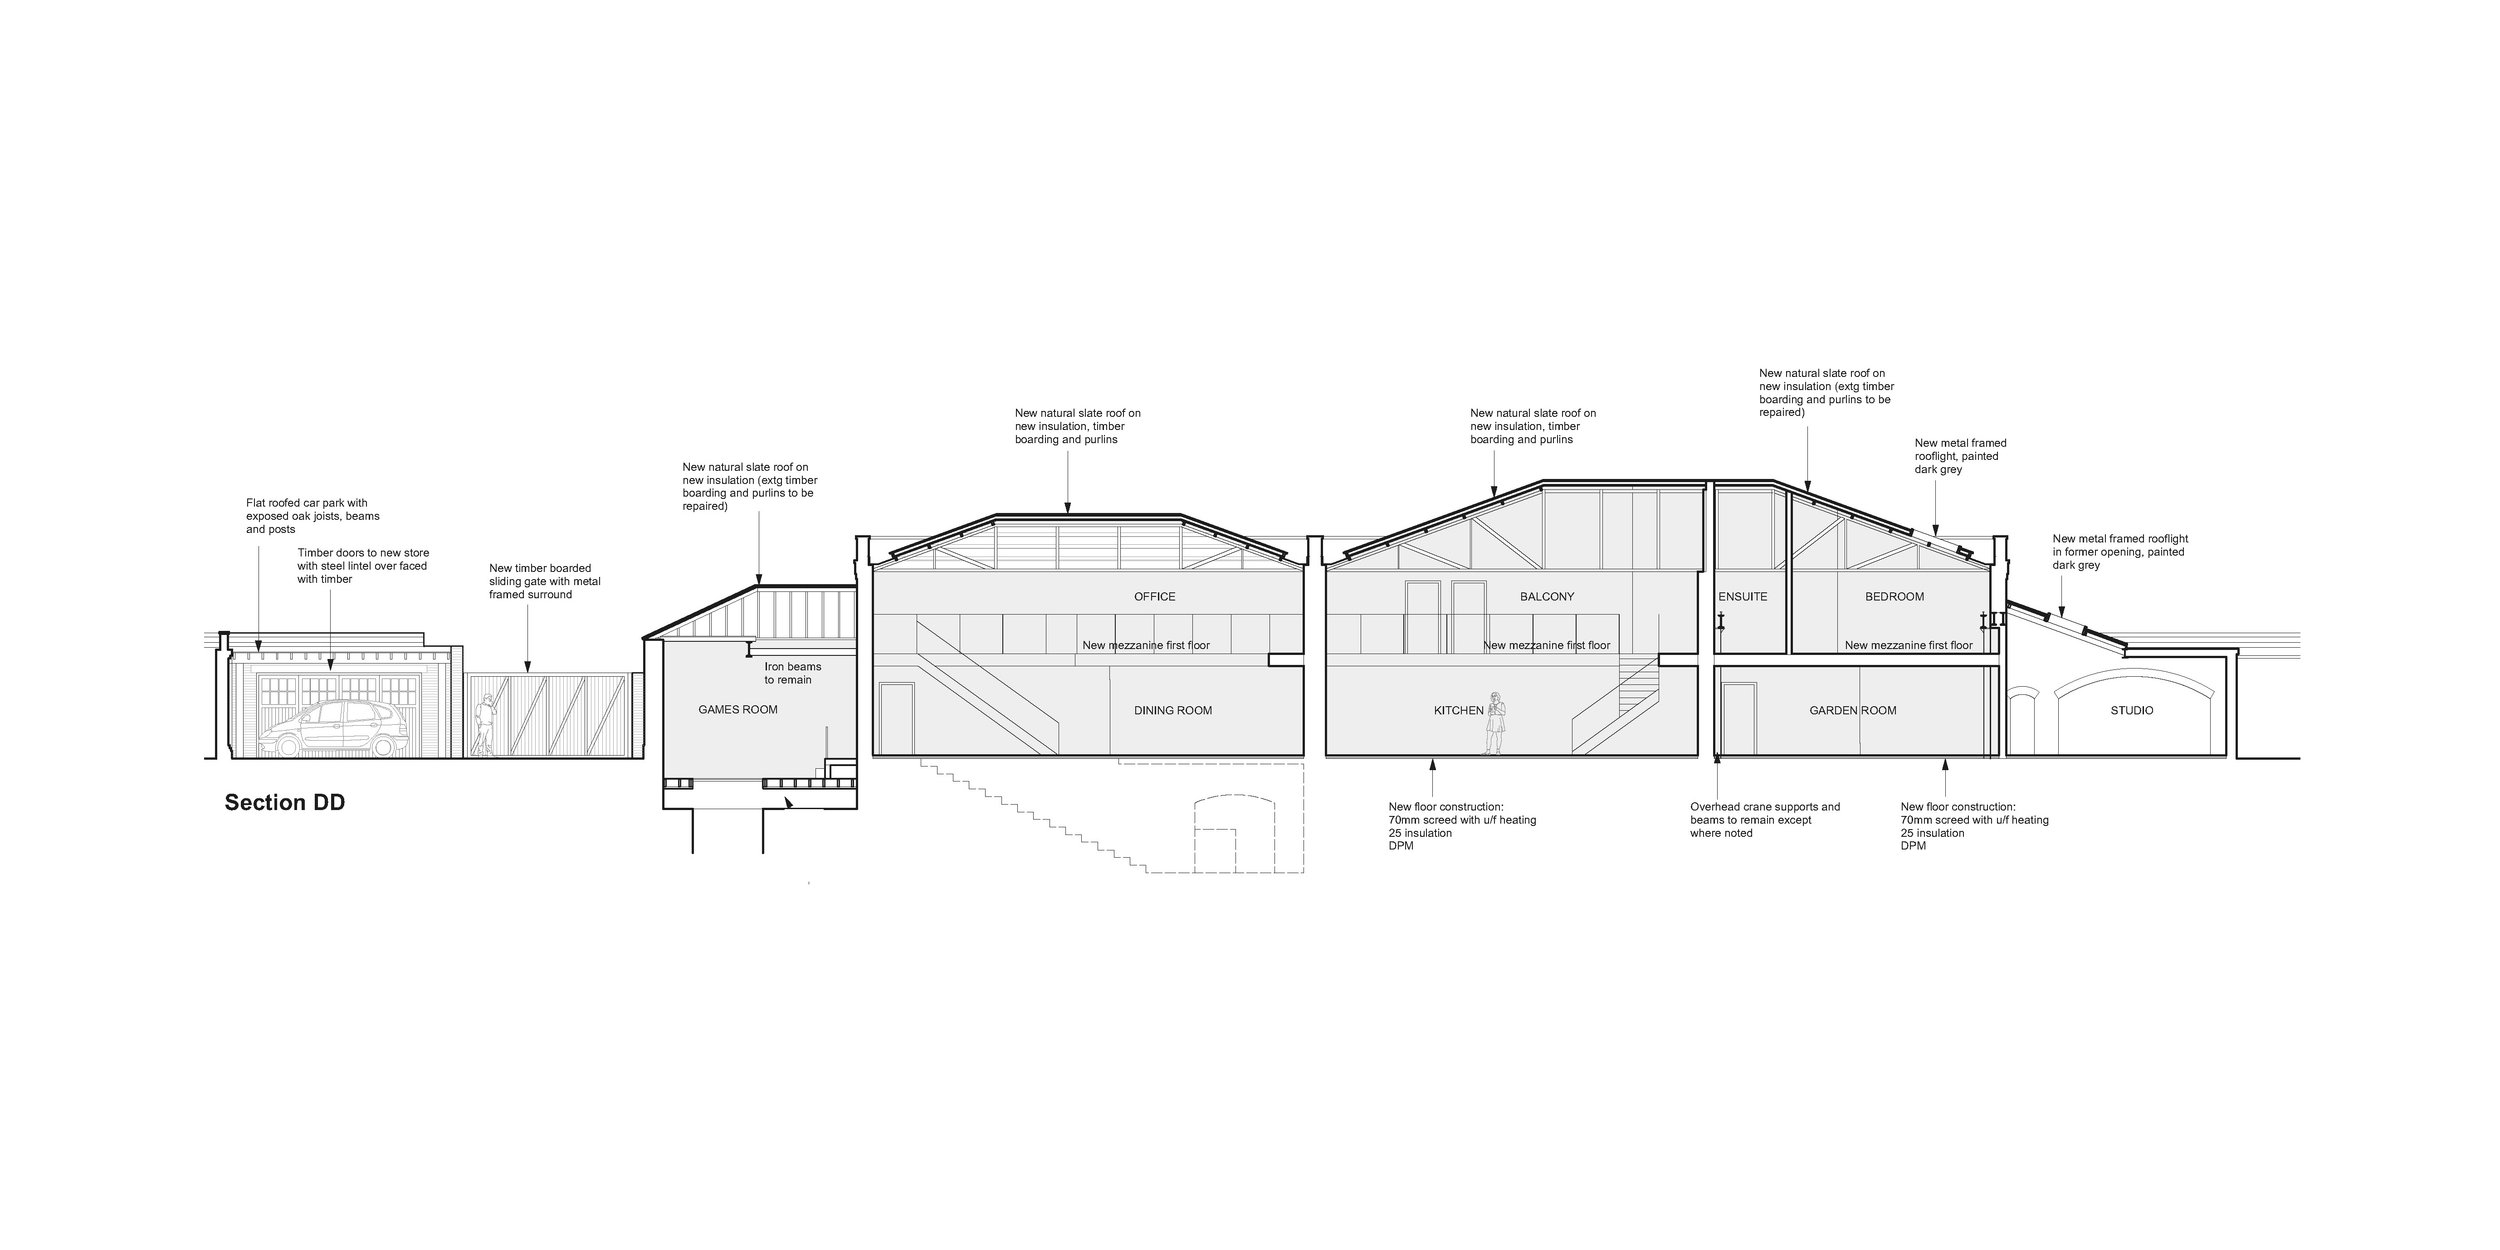 A1014 351 A Sections as proposed.jpg